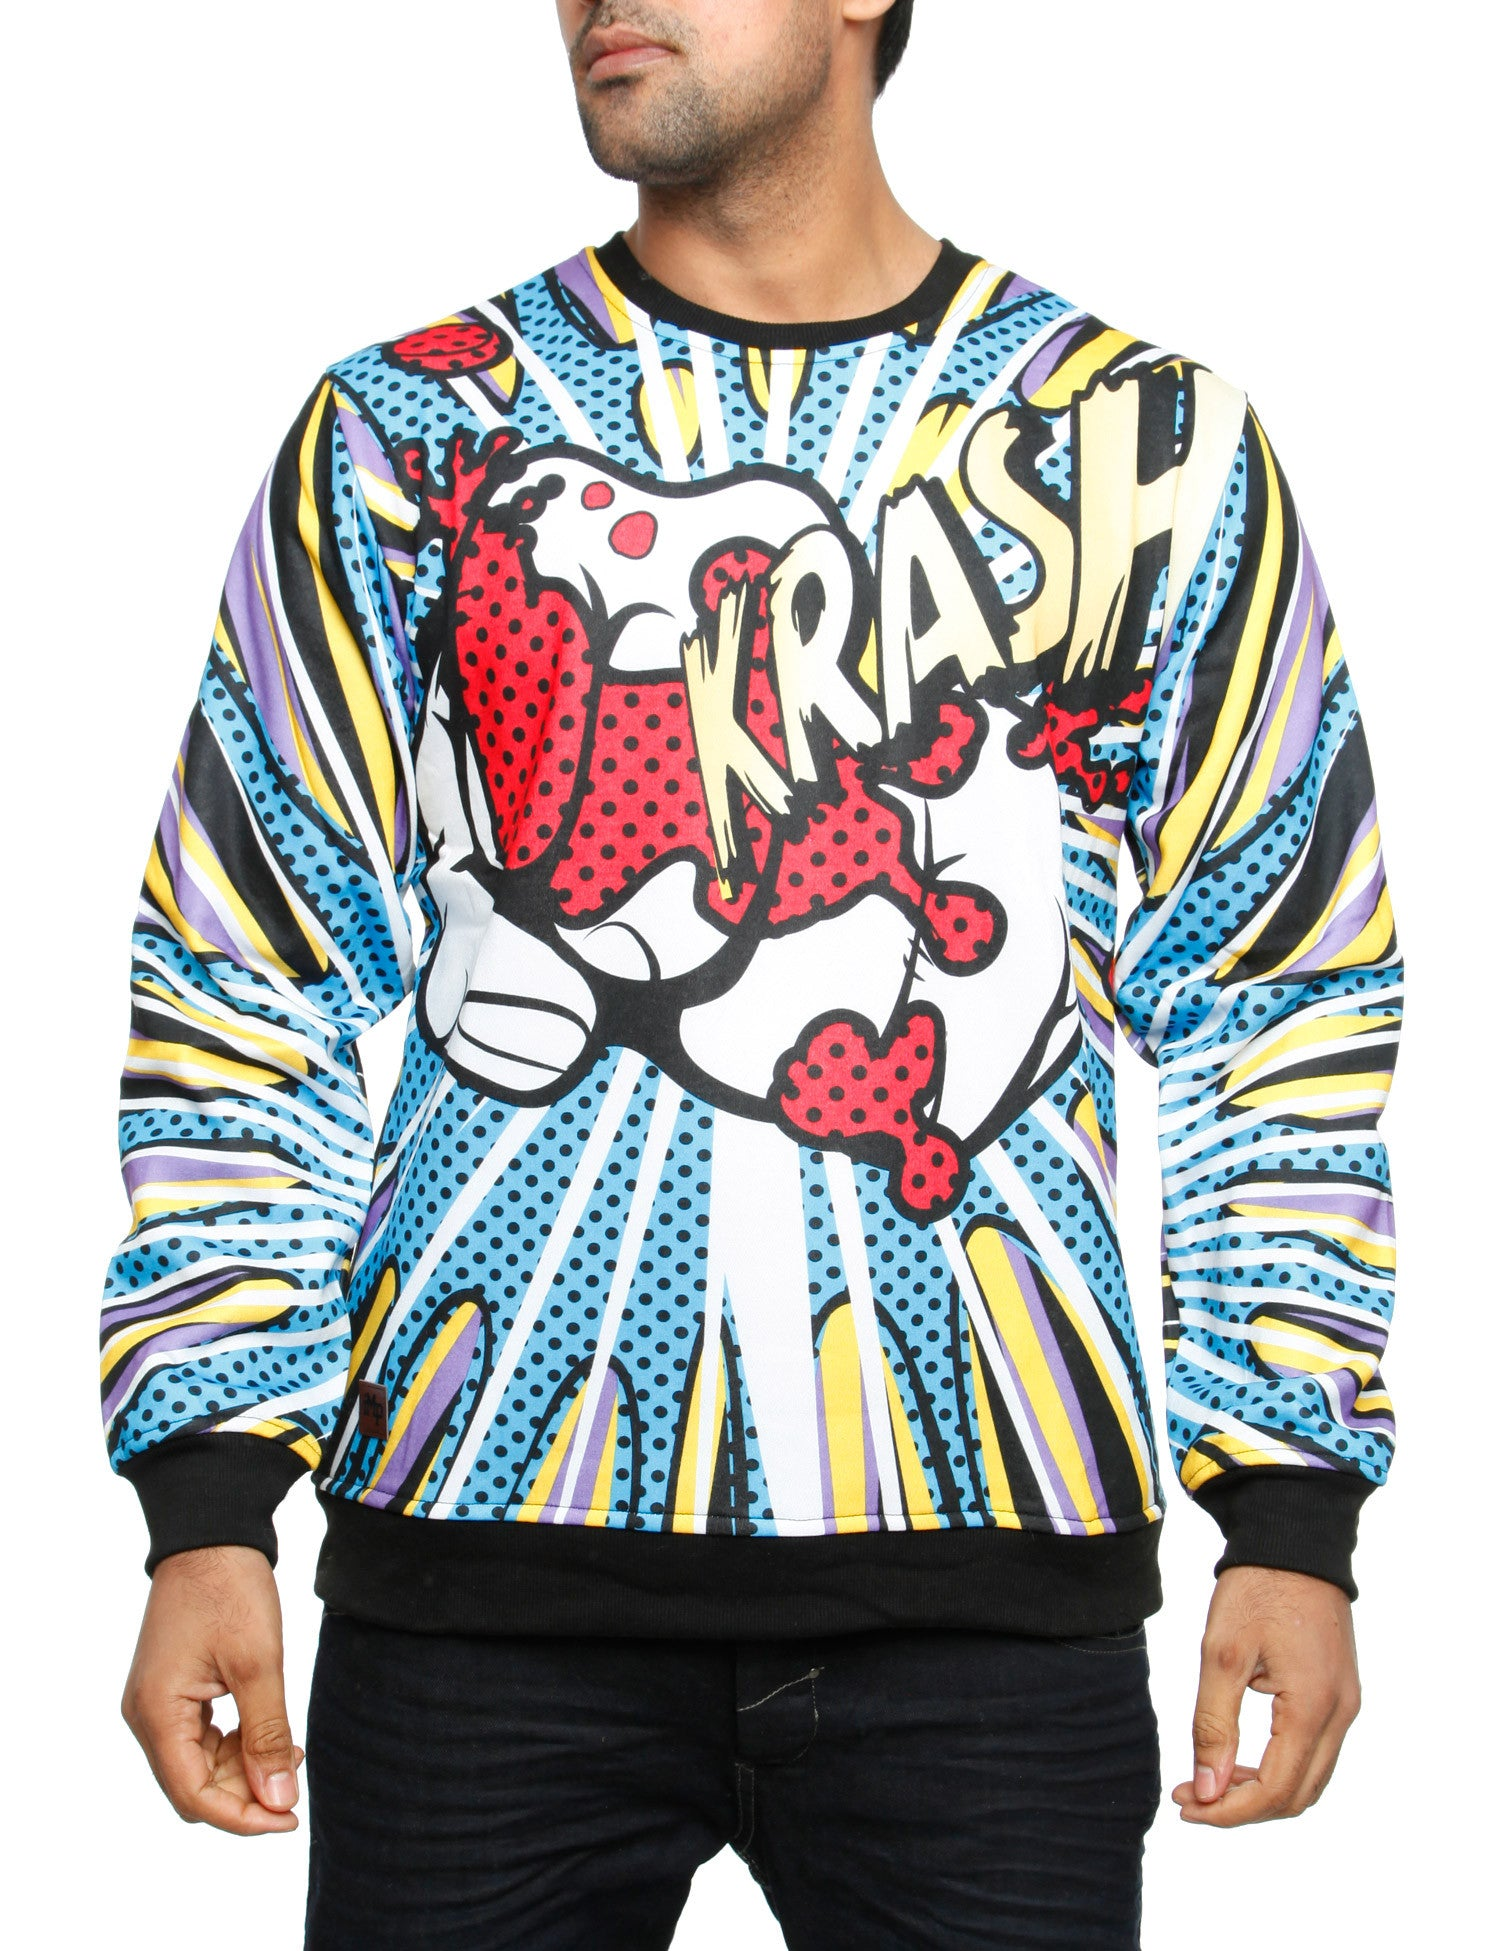 Imperious ´Krush´ All-Over Sweatshirt CS535 Blue